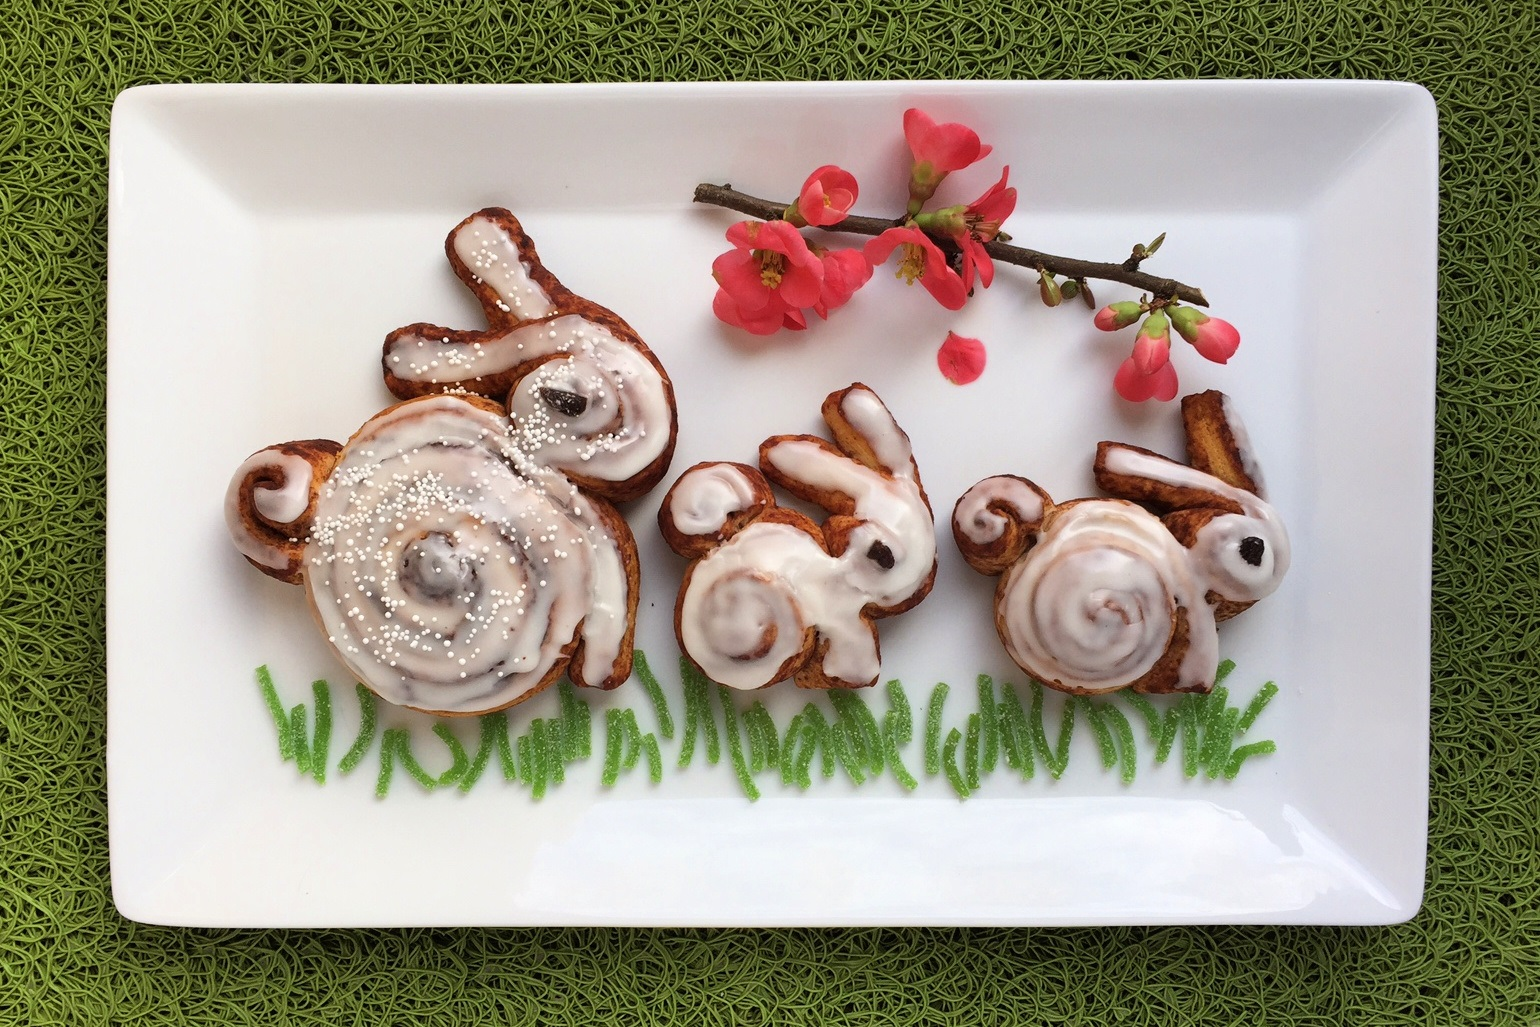 cinnamon roll bunnies displayed on a platter with candy grass and quince blossoms